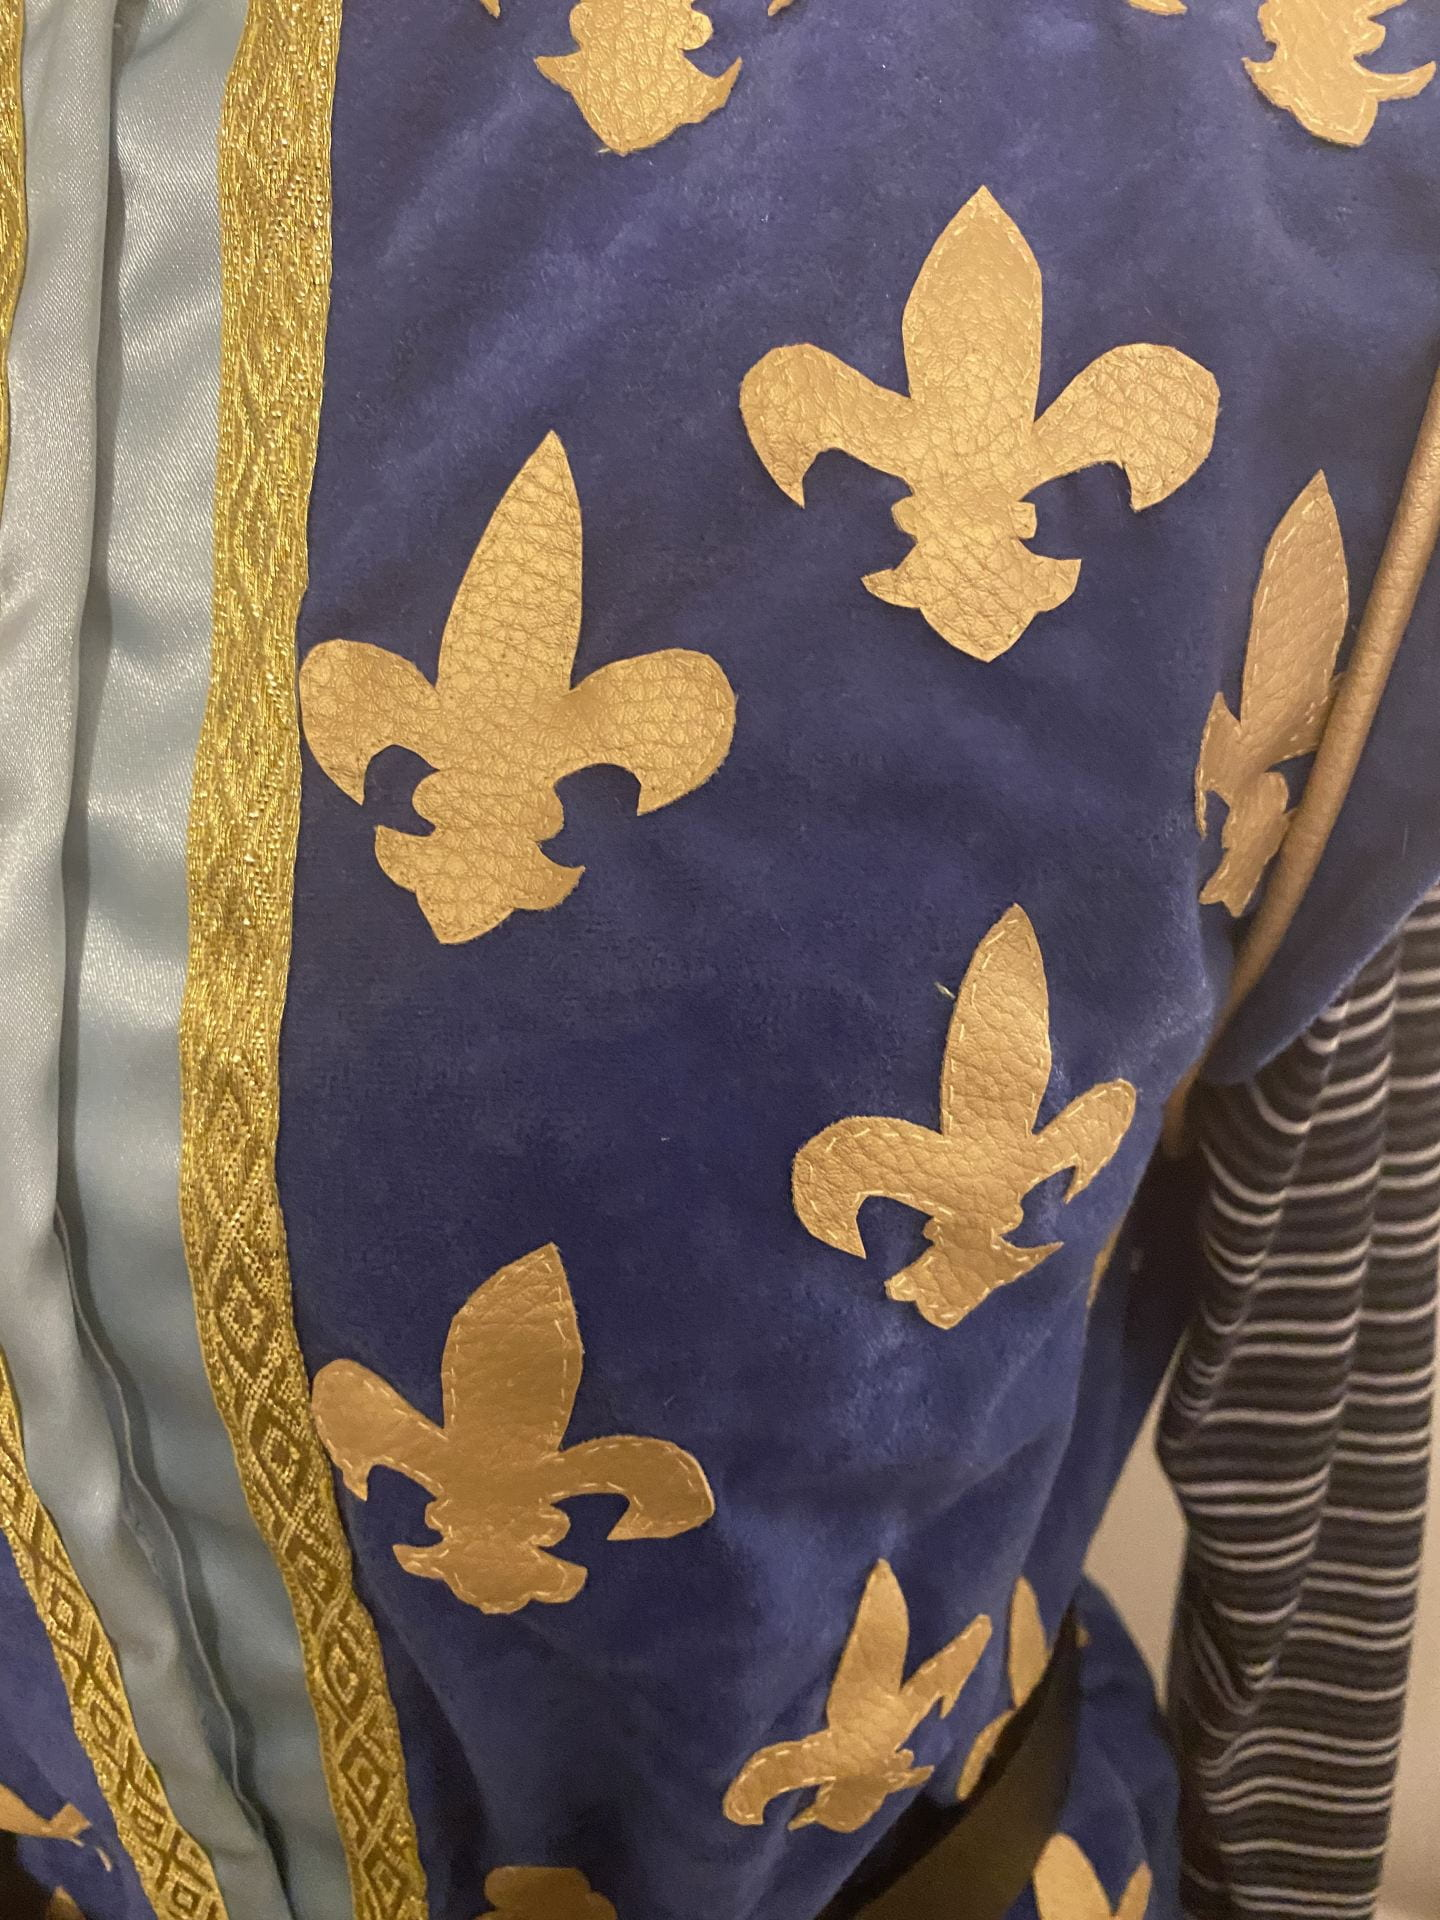 Close up for the blue and gold bodice details. Shoes the gold details and the stitching.